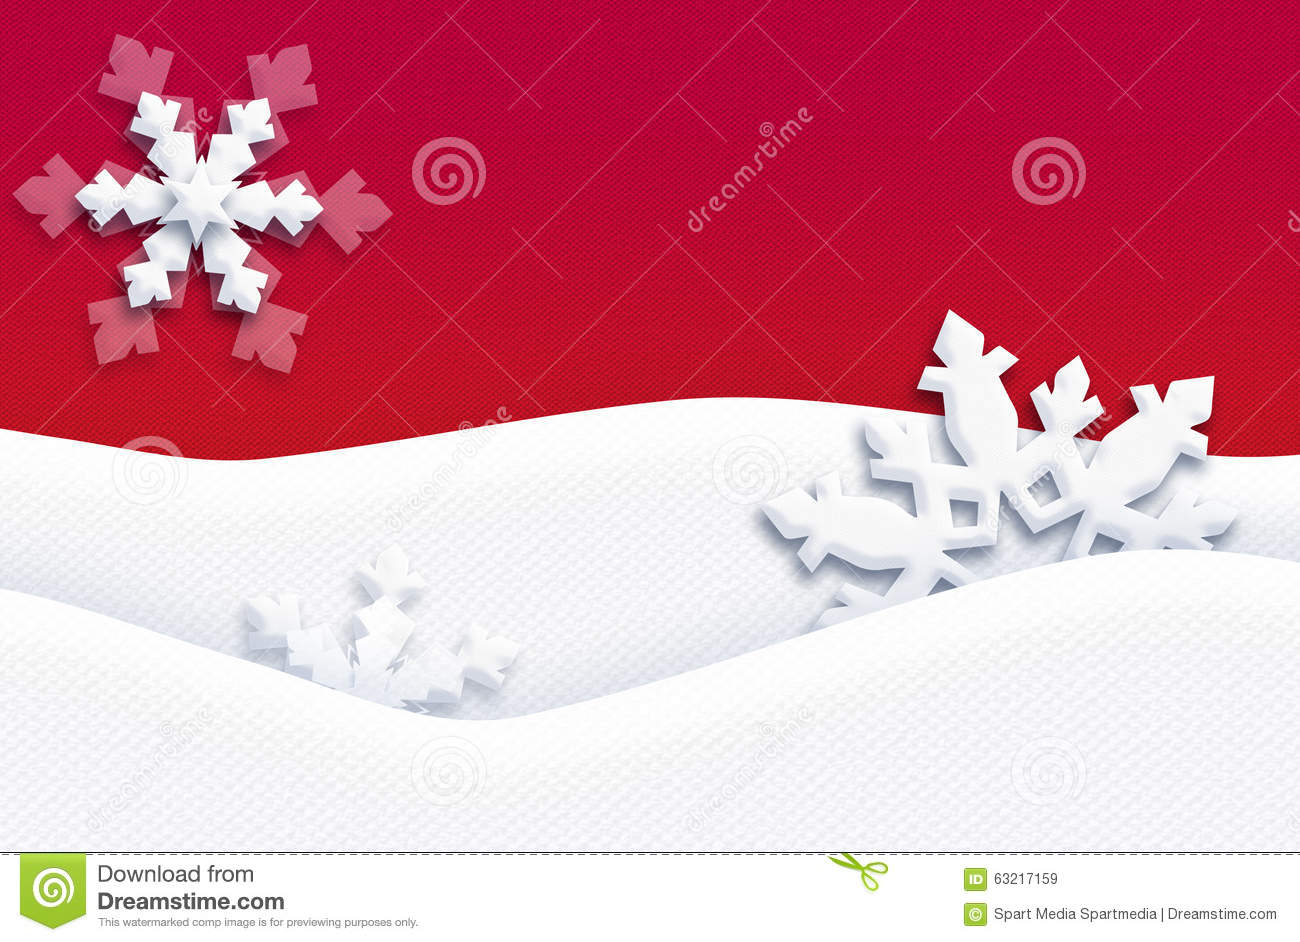 Download CHRISTMAS Holidays Postcard RED Handcraft Art Stock Image - Image of free, illustrations: 63217159